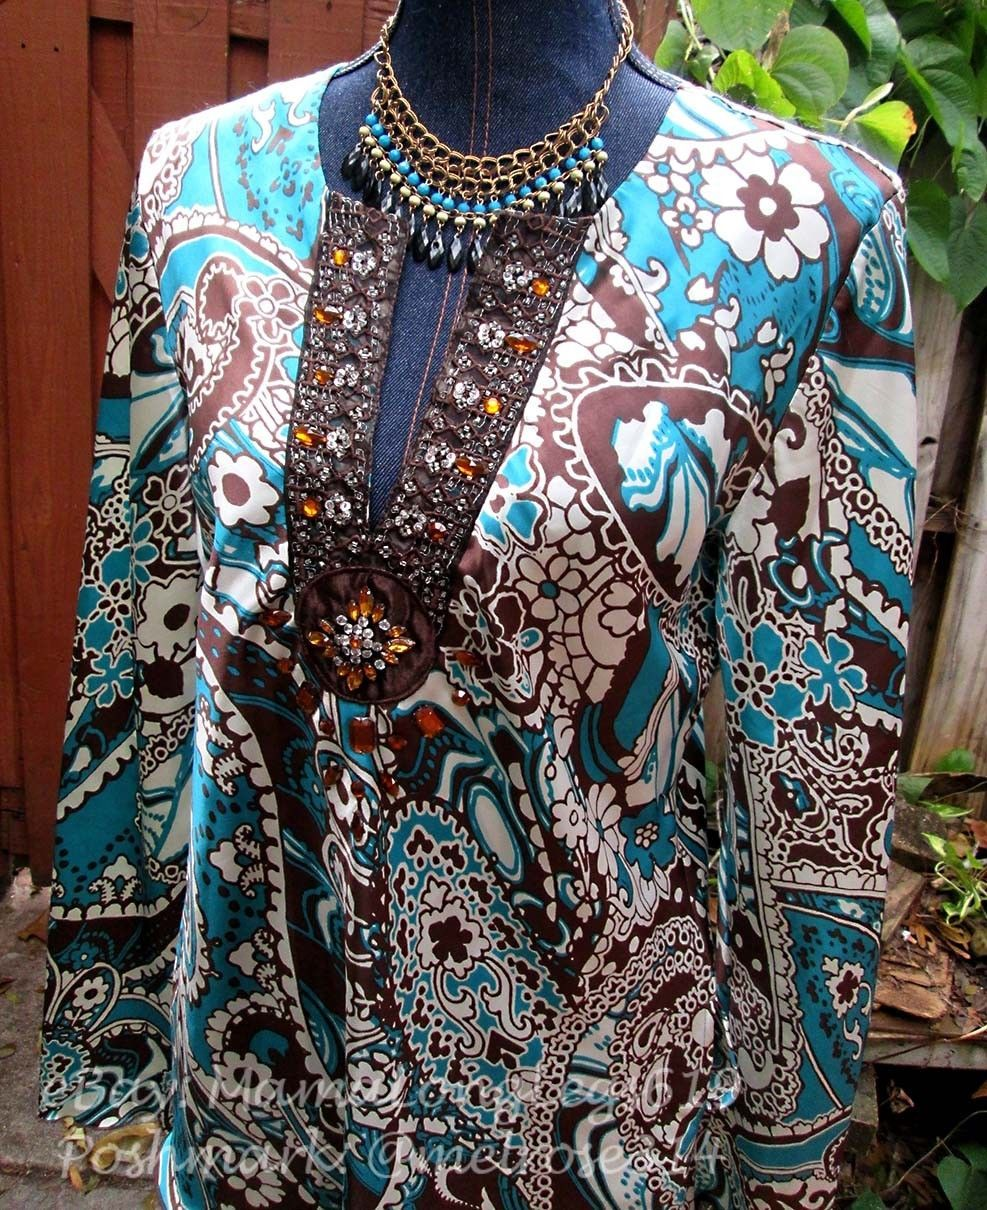 Bold Print Blouse Sz 12 Nicole by Nicole Miller Jeweled Tunic Boho Top Floral